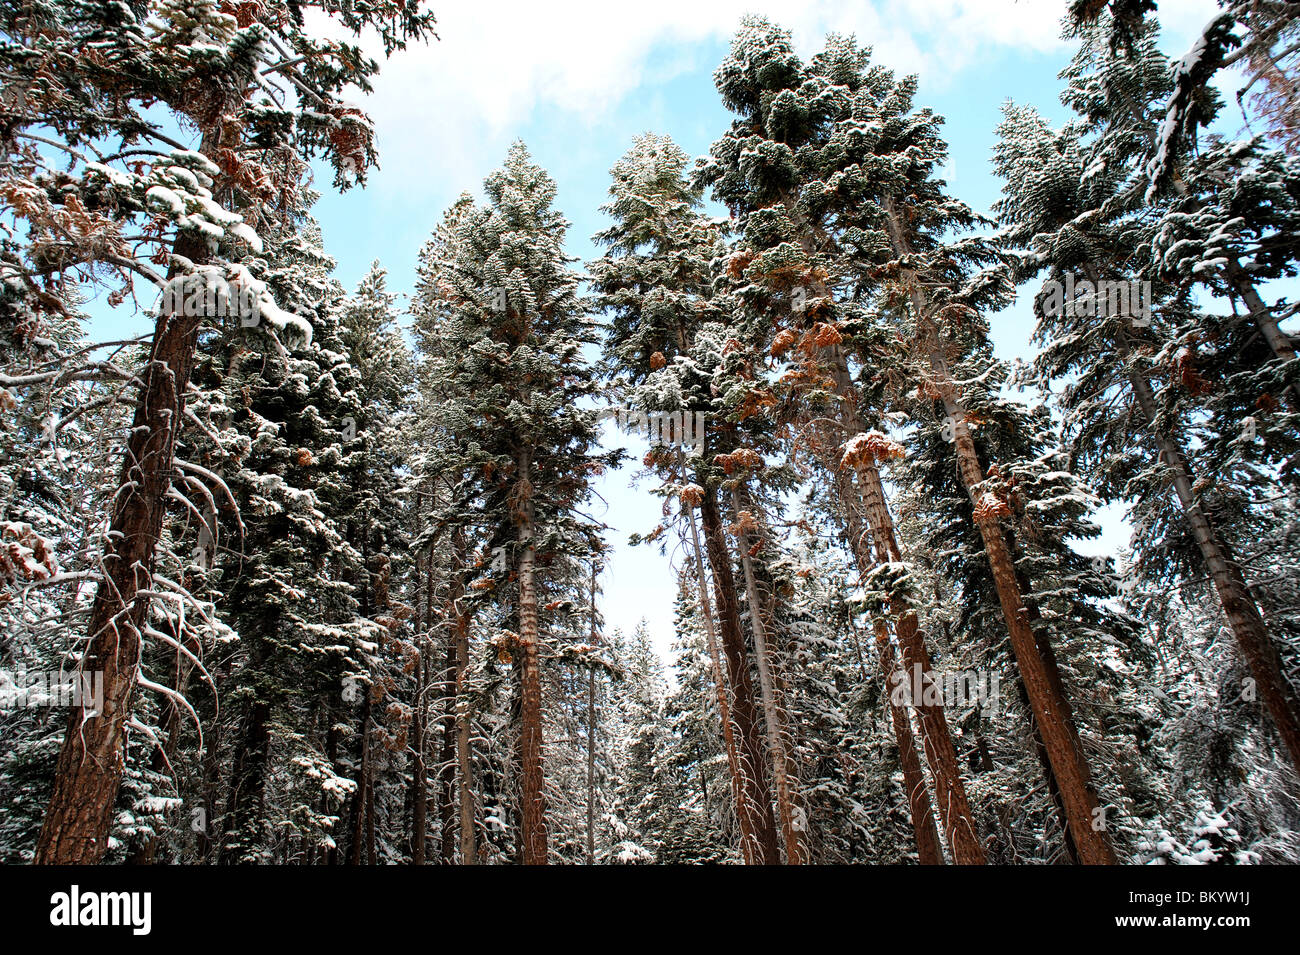 Towering Fir trees covered in a light dusting of early winter snow in California's El Dorado National Forest - Stock Image